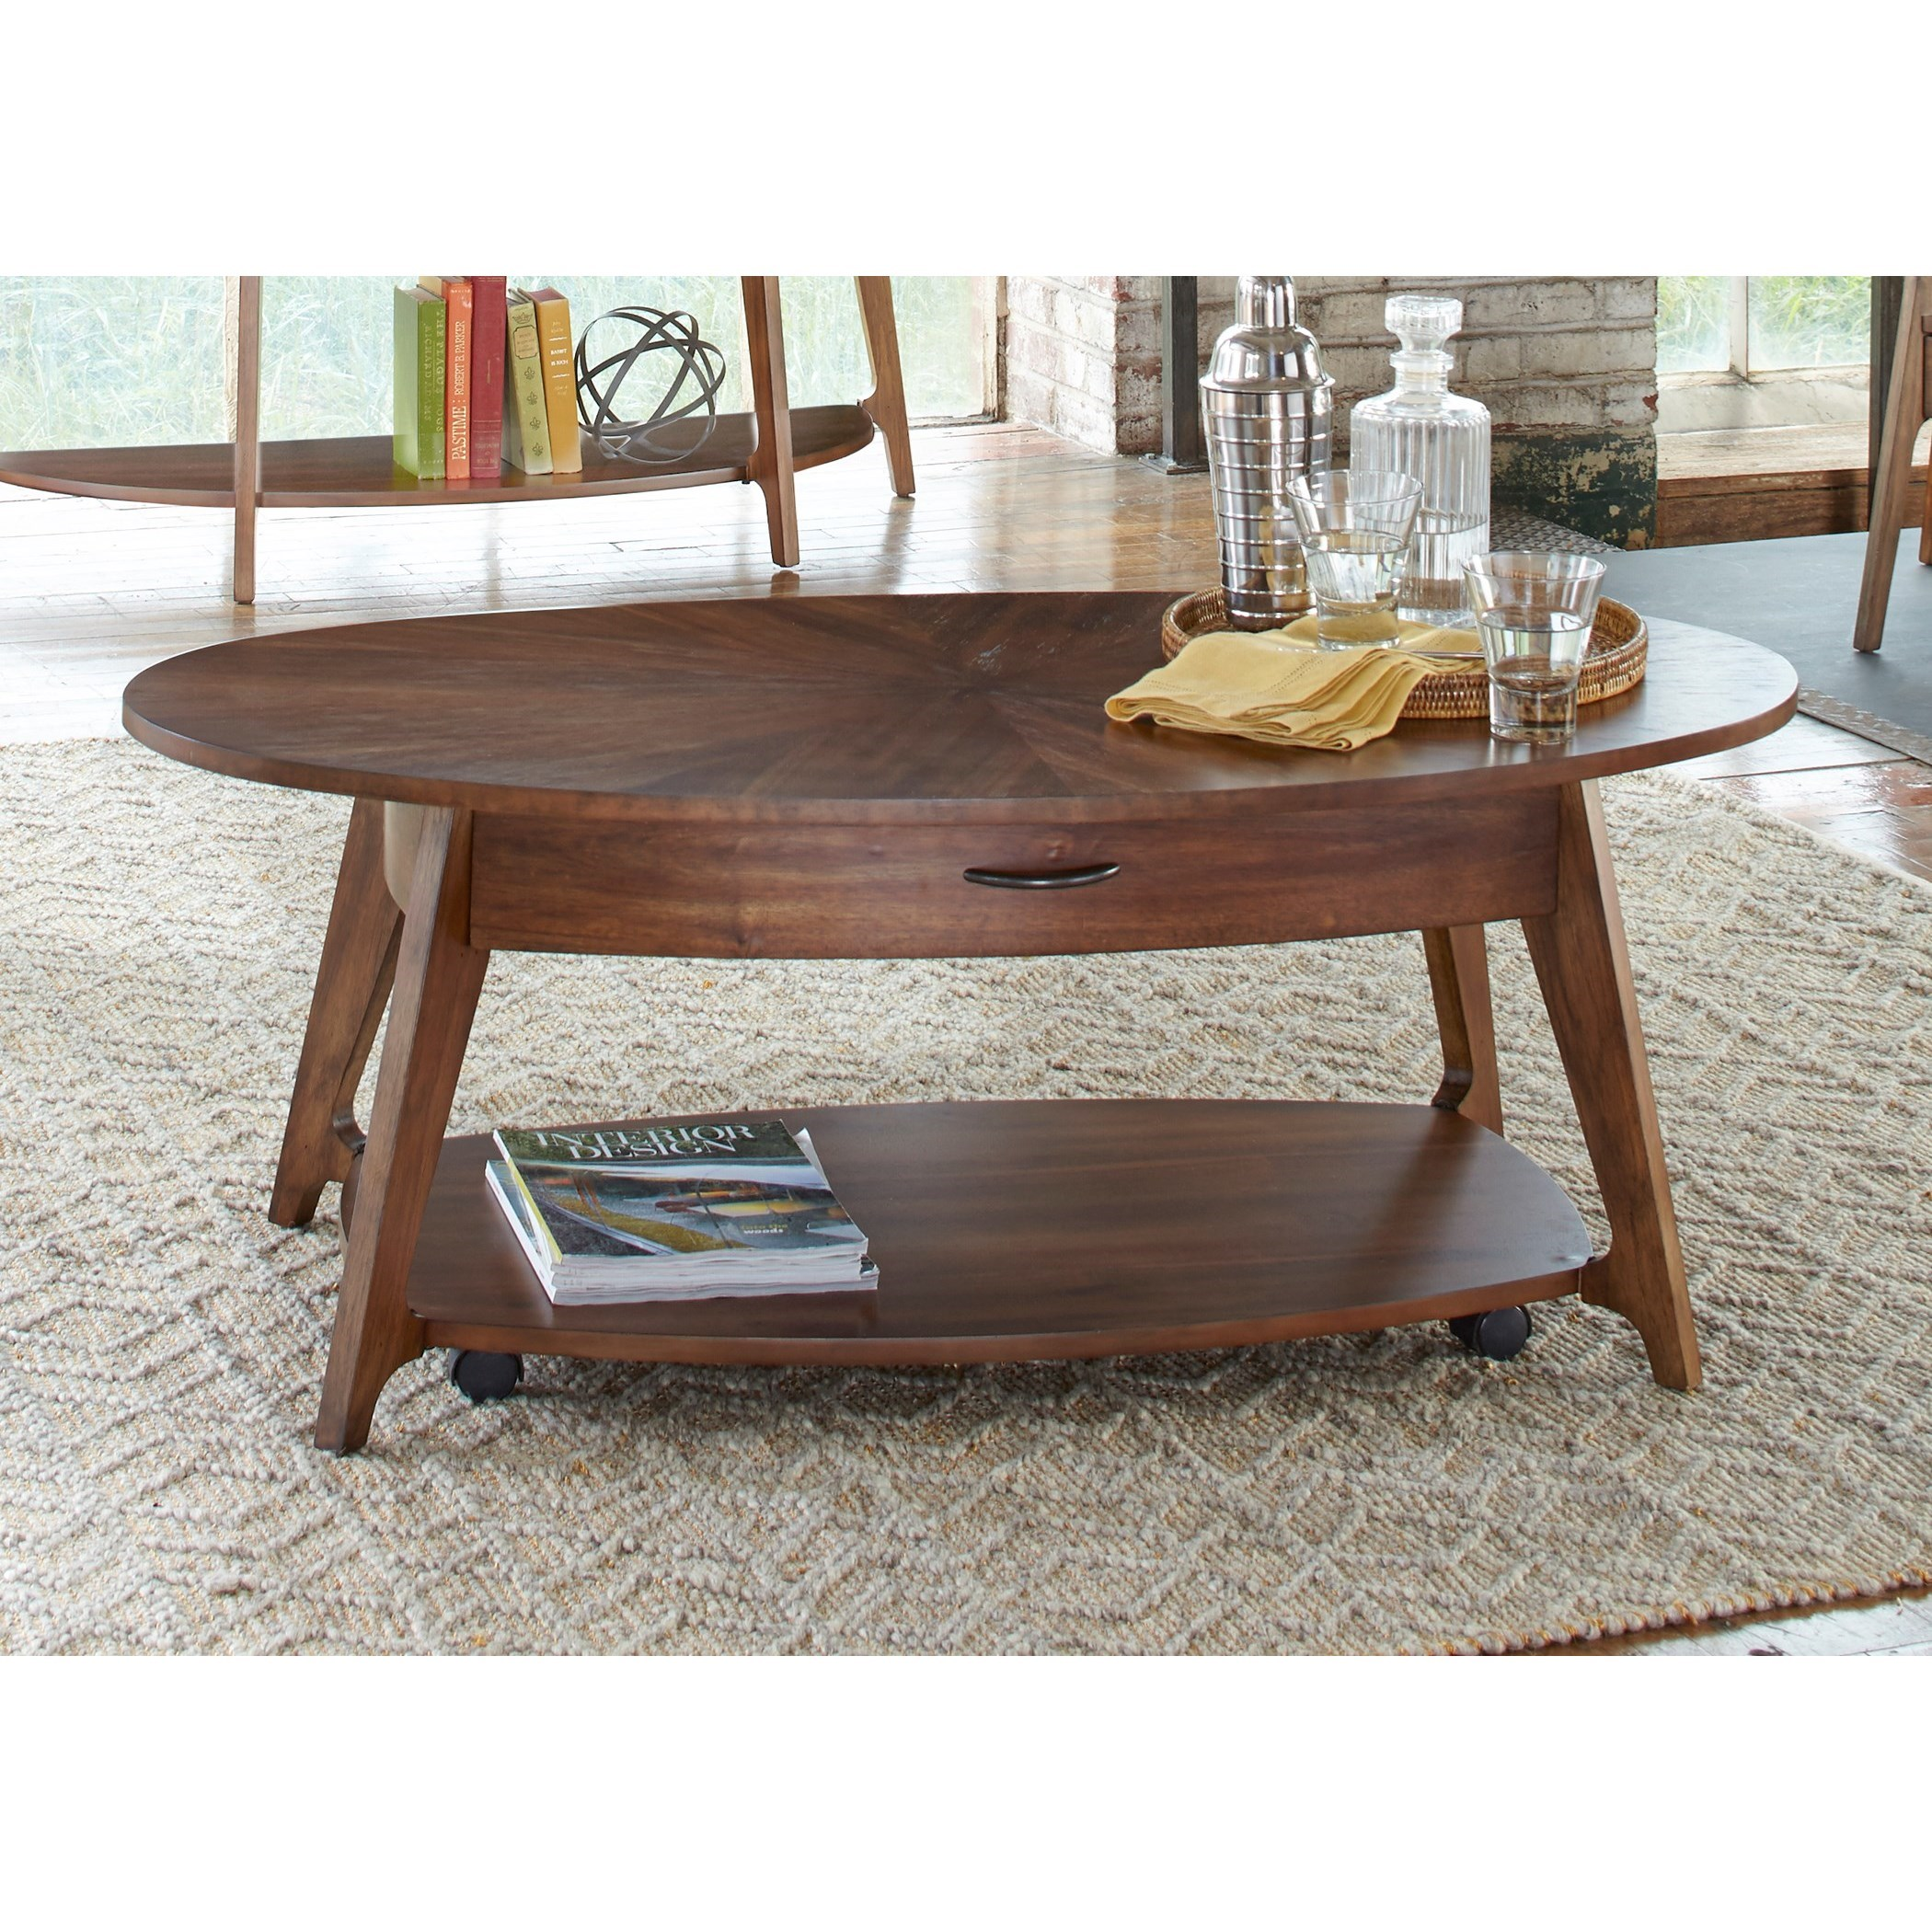 Liberty Furniture Landon Occasional Oval Cocktail Table - Item Number: 72-OT1010